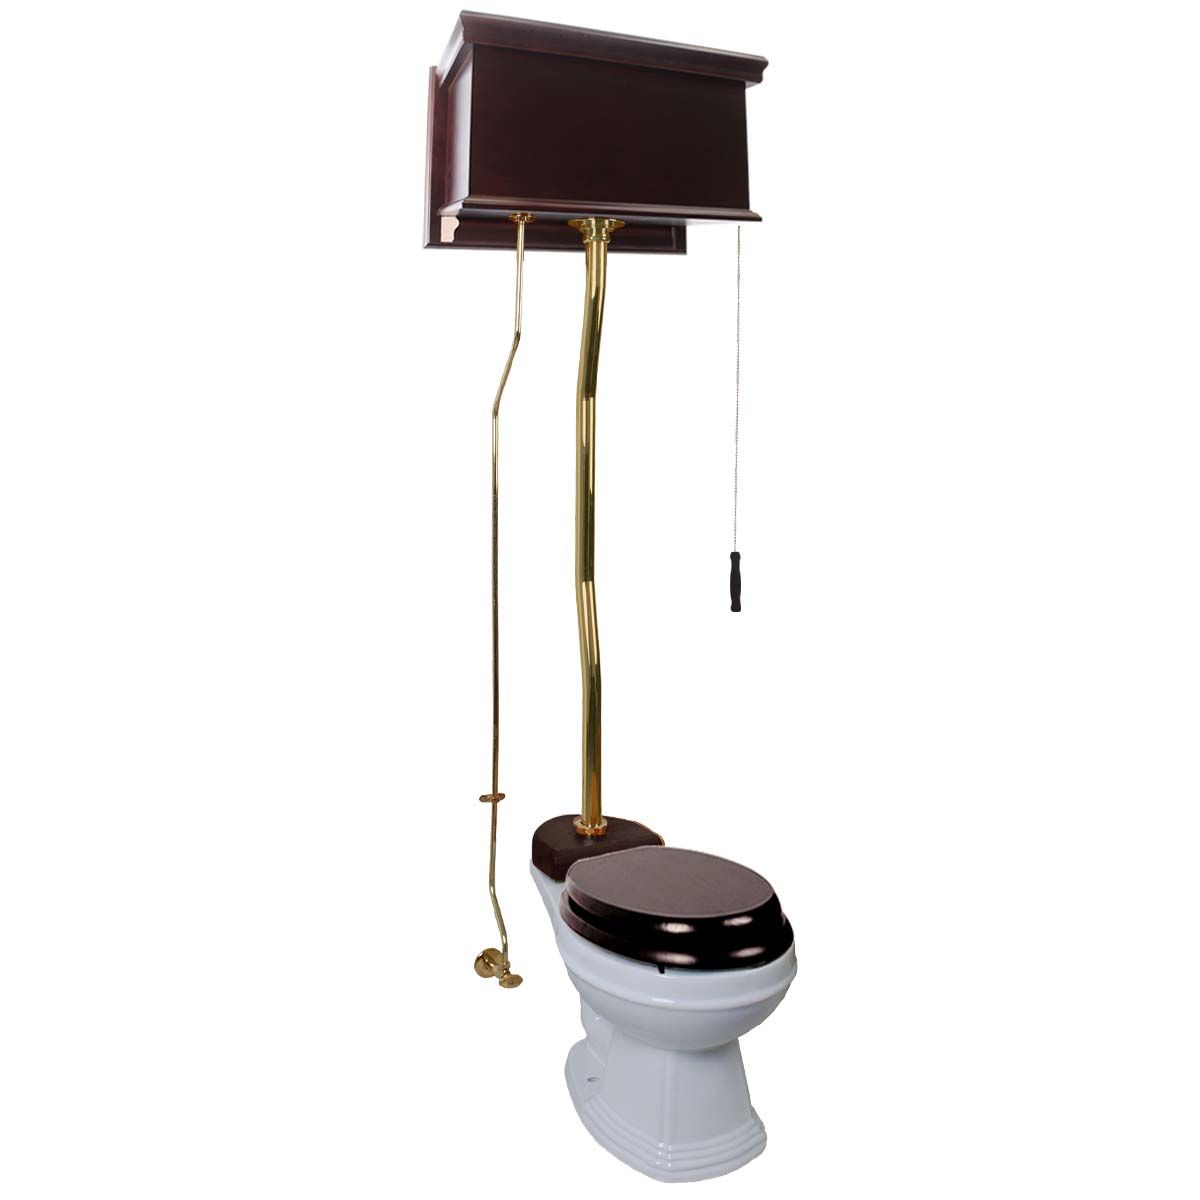 High Tank Pull Chain Toilet Item #20142  Dark Oak High Tank Pull Chain Toilet White Elongated